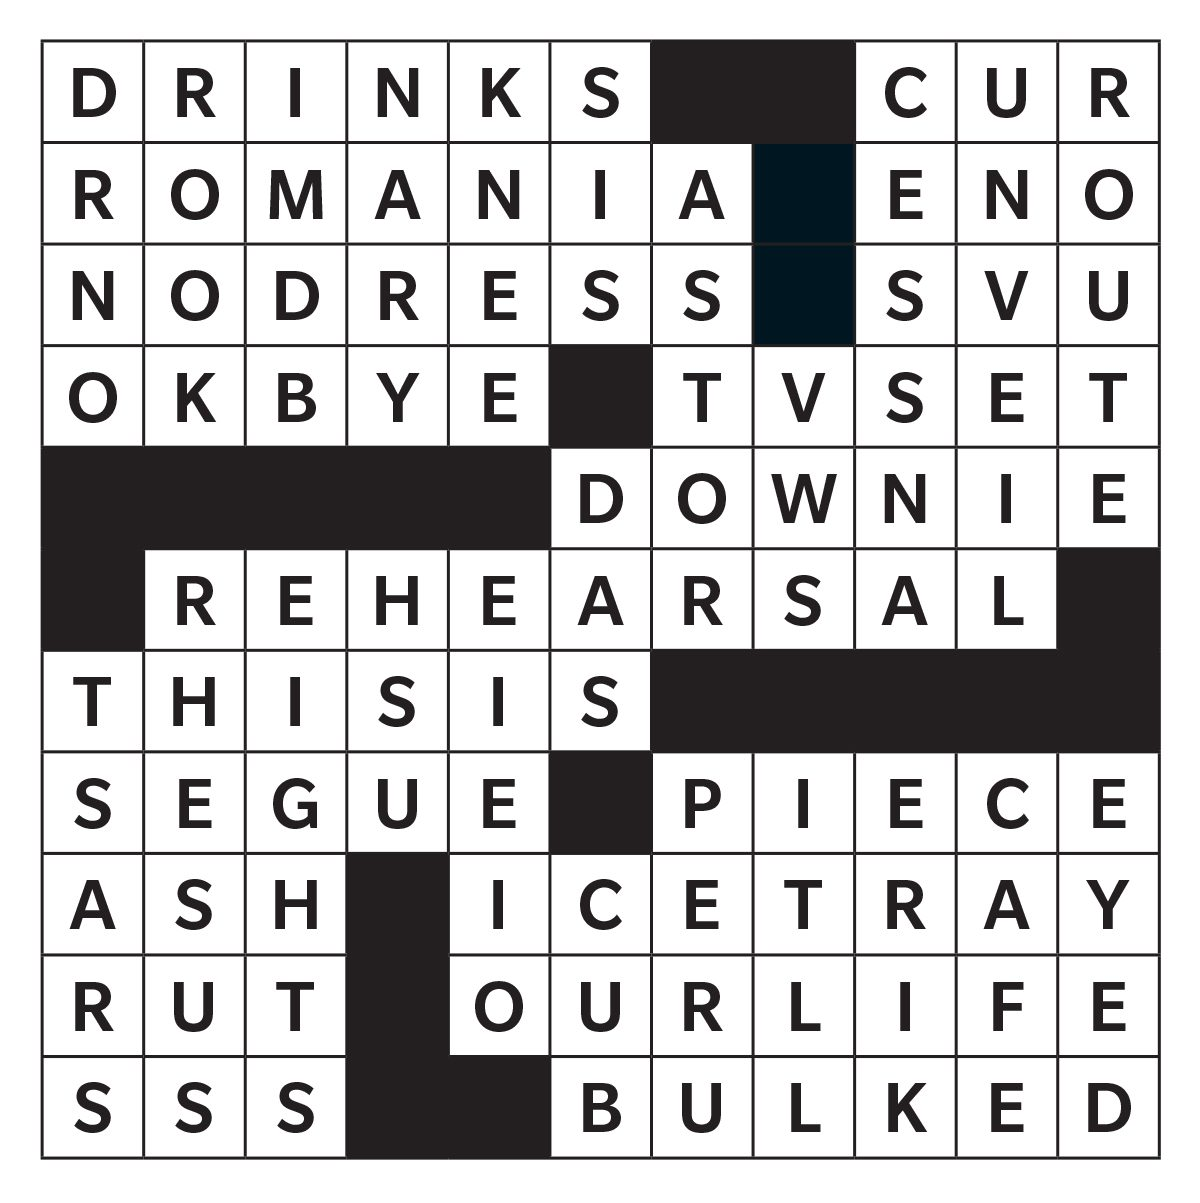 Printable crossword answer - October 2019